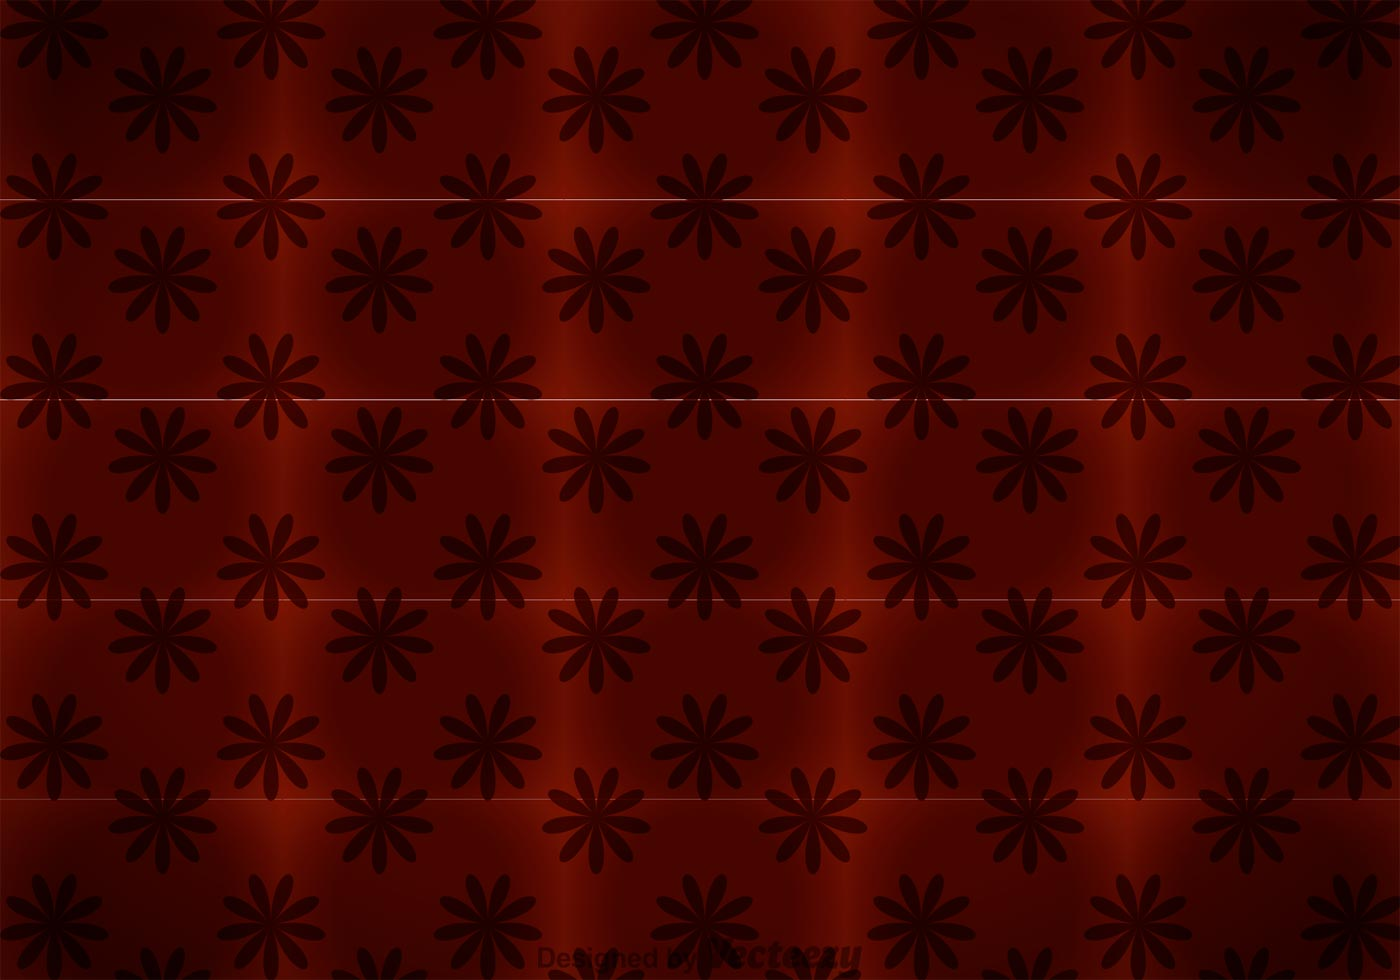 Maroon Flowers Background Vector - Download Free Vectors ...